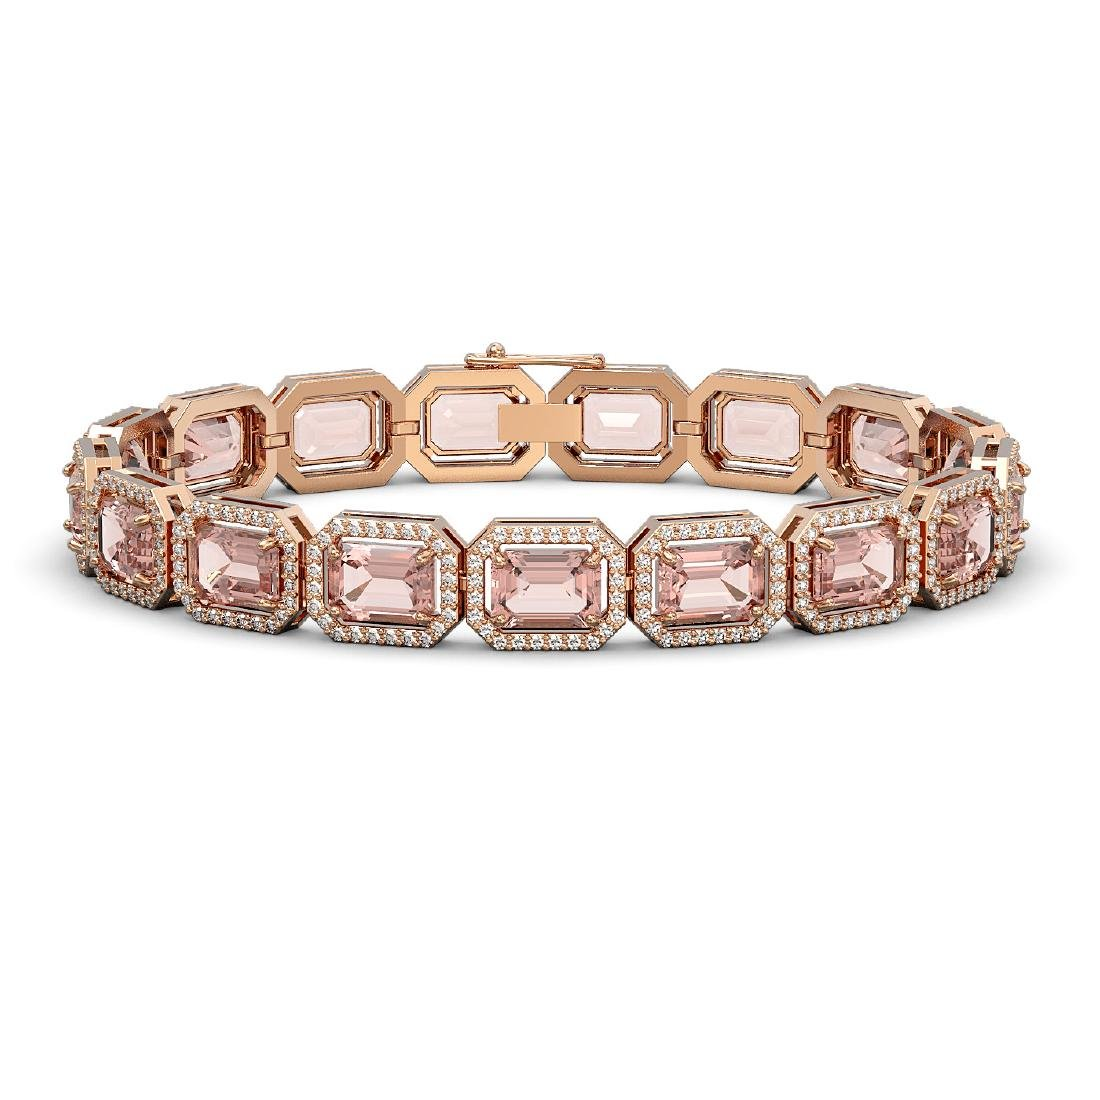 22.81 CTW Morganite & Diamond Halo Bracelet 10K Rose